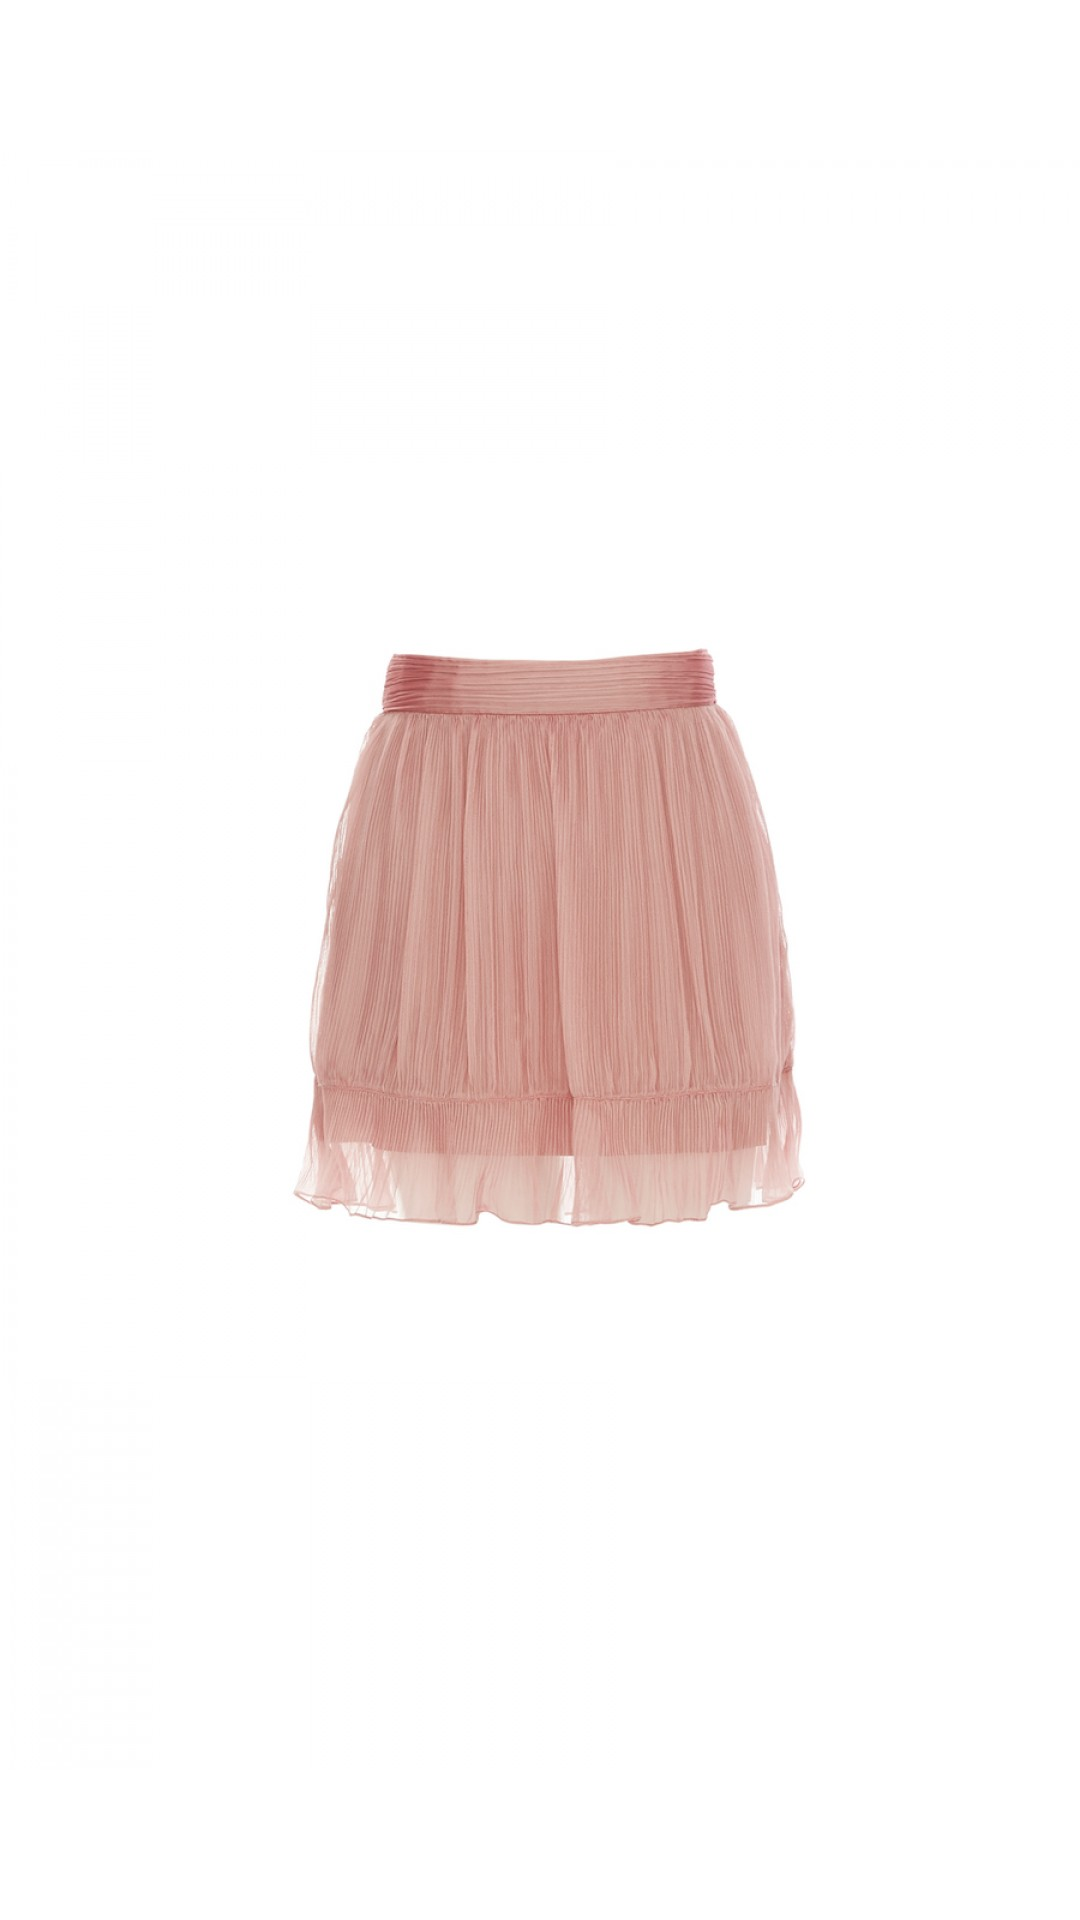 MINI PINK CHIFFON SKIRT